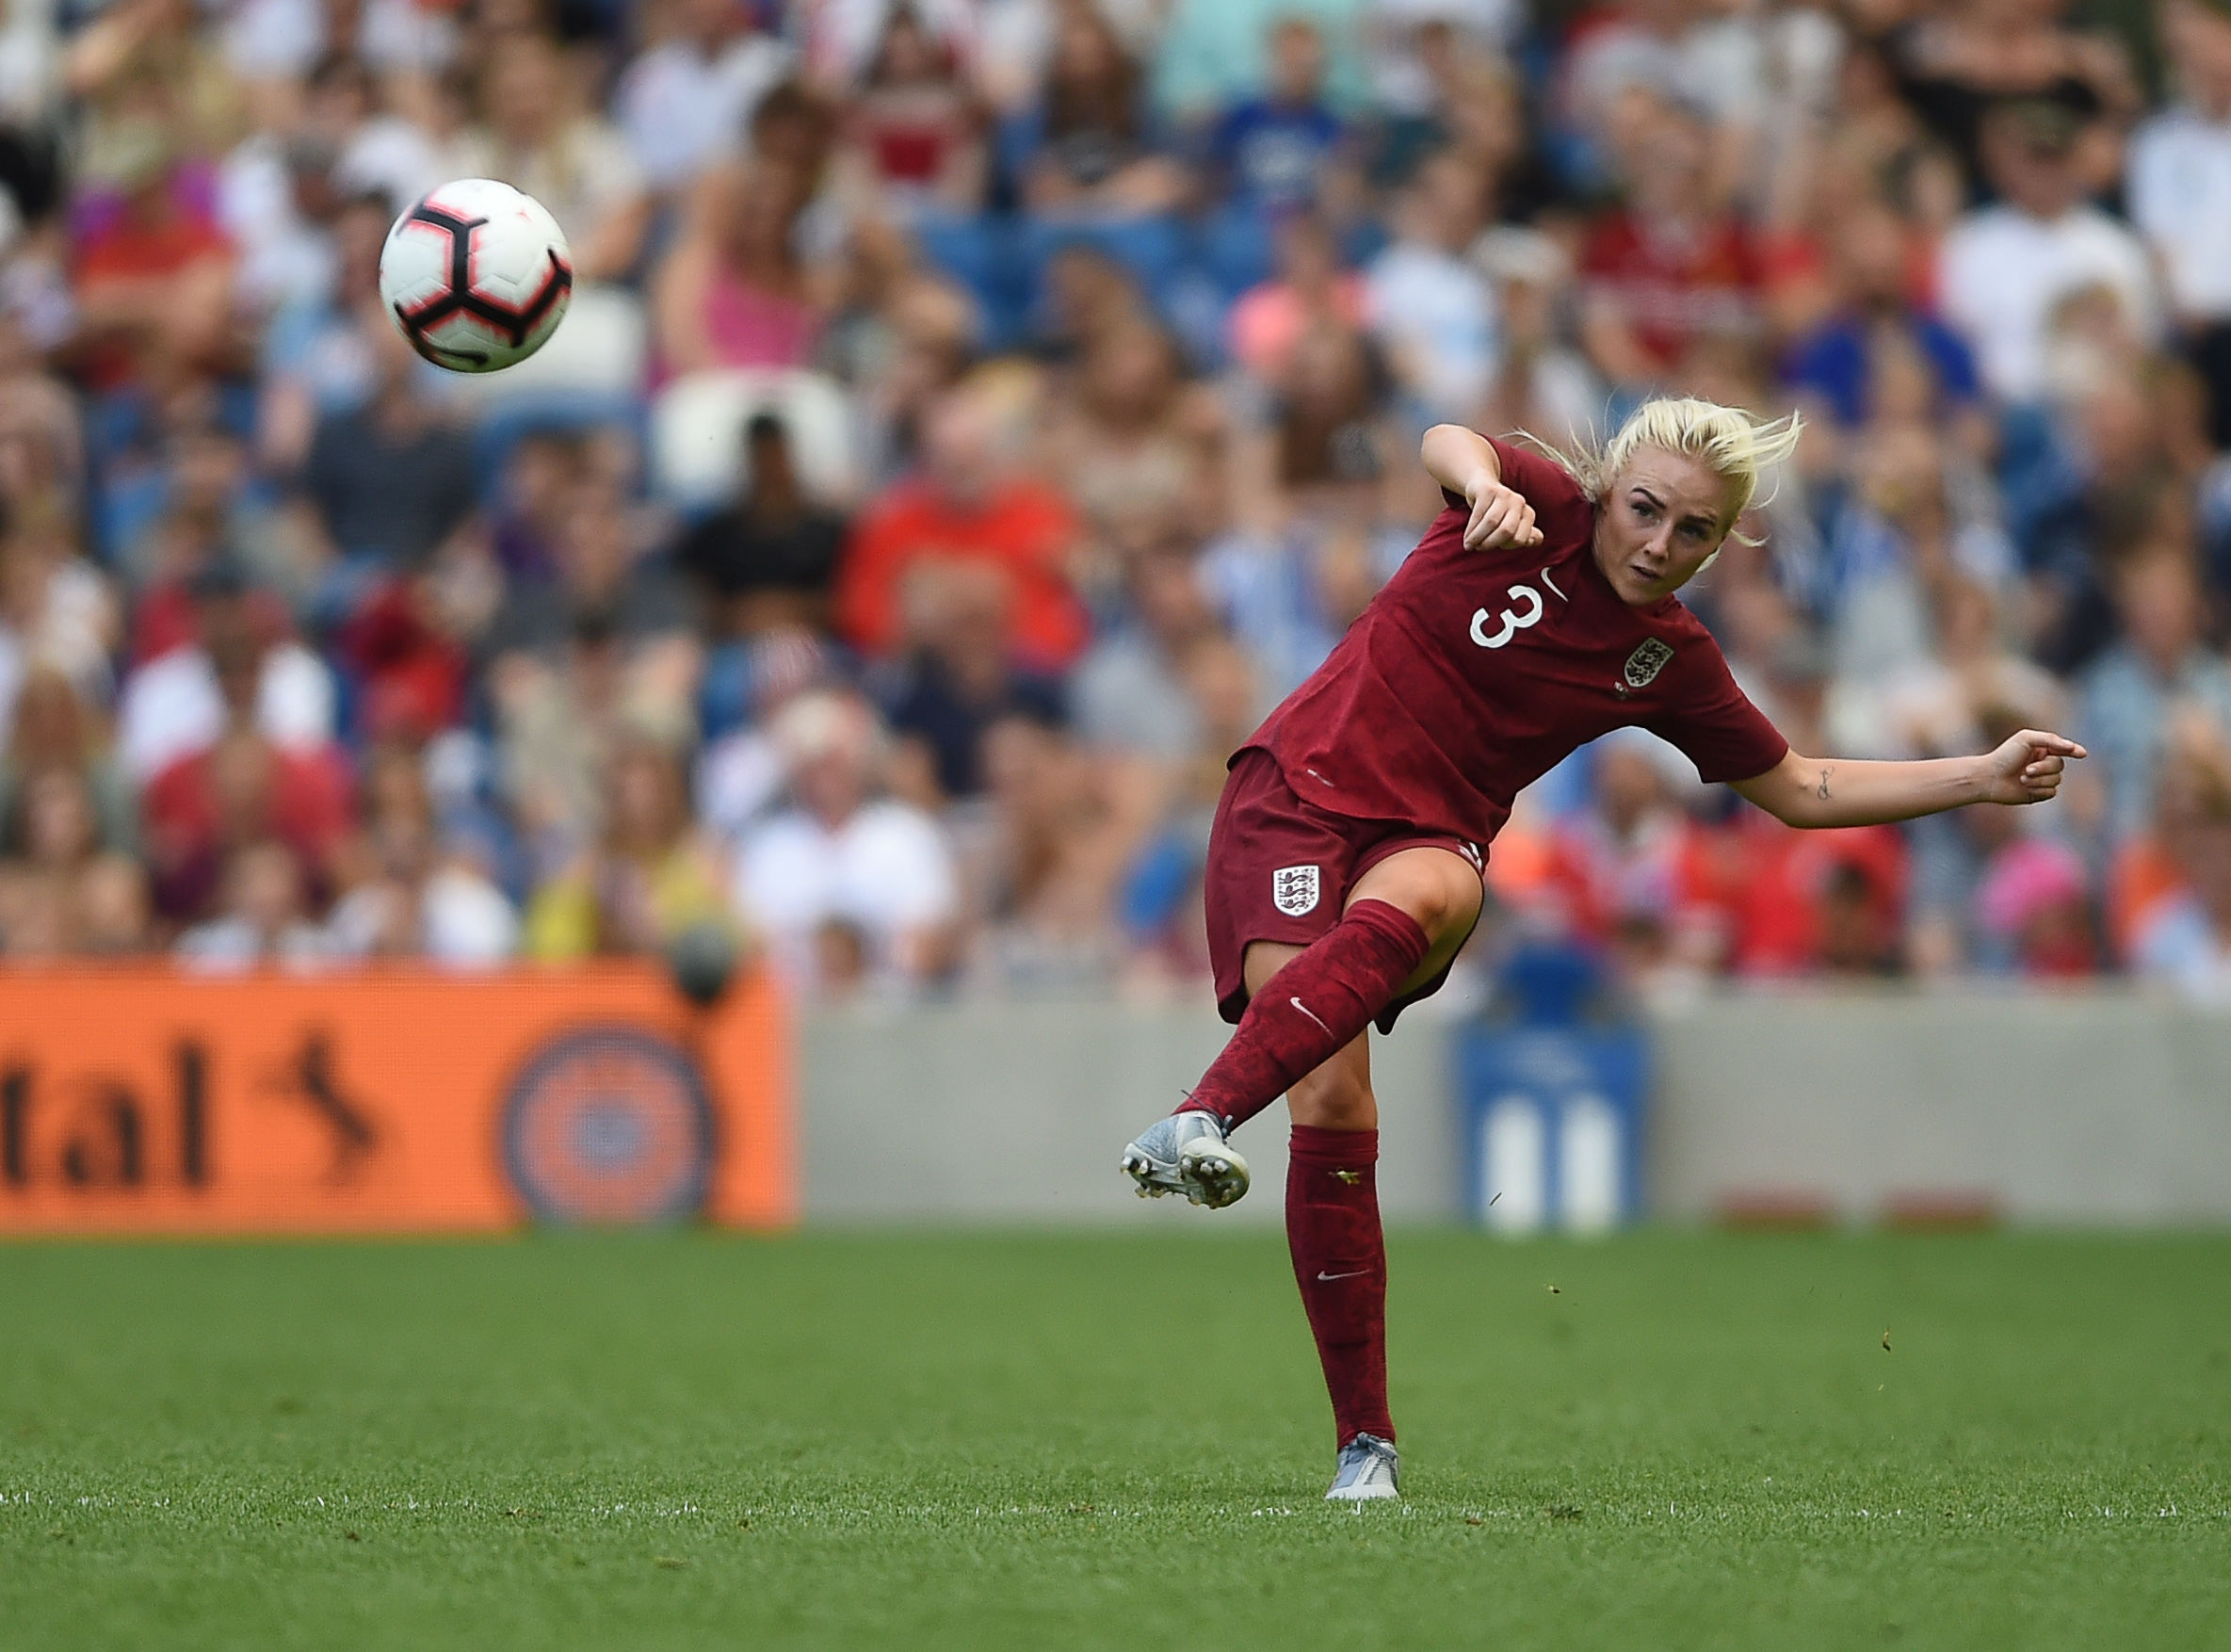 2019 Women's World Cup Preview and Betting Tips